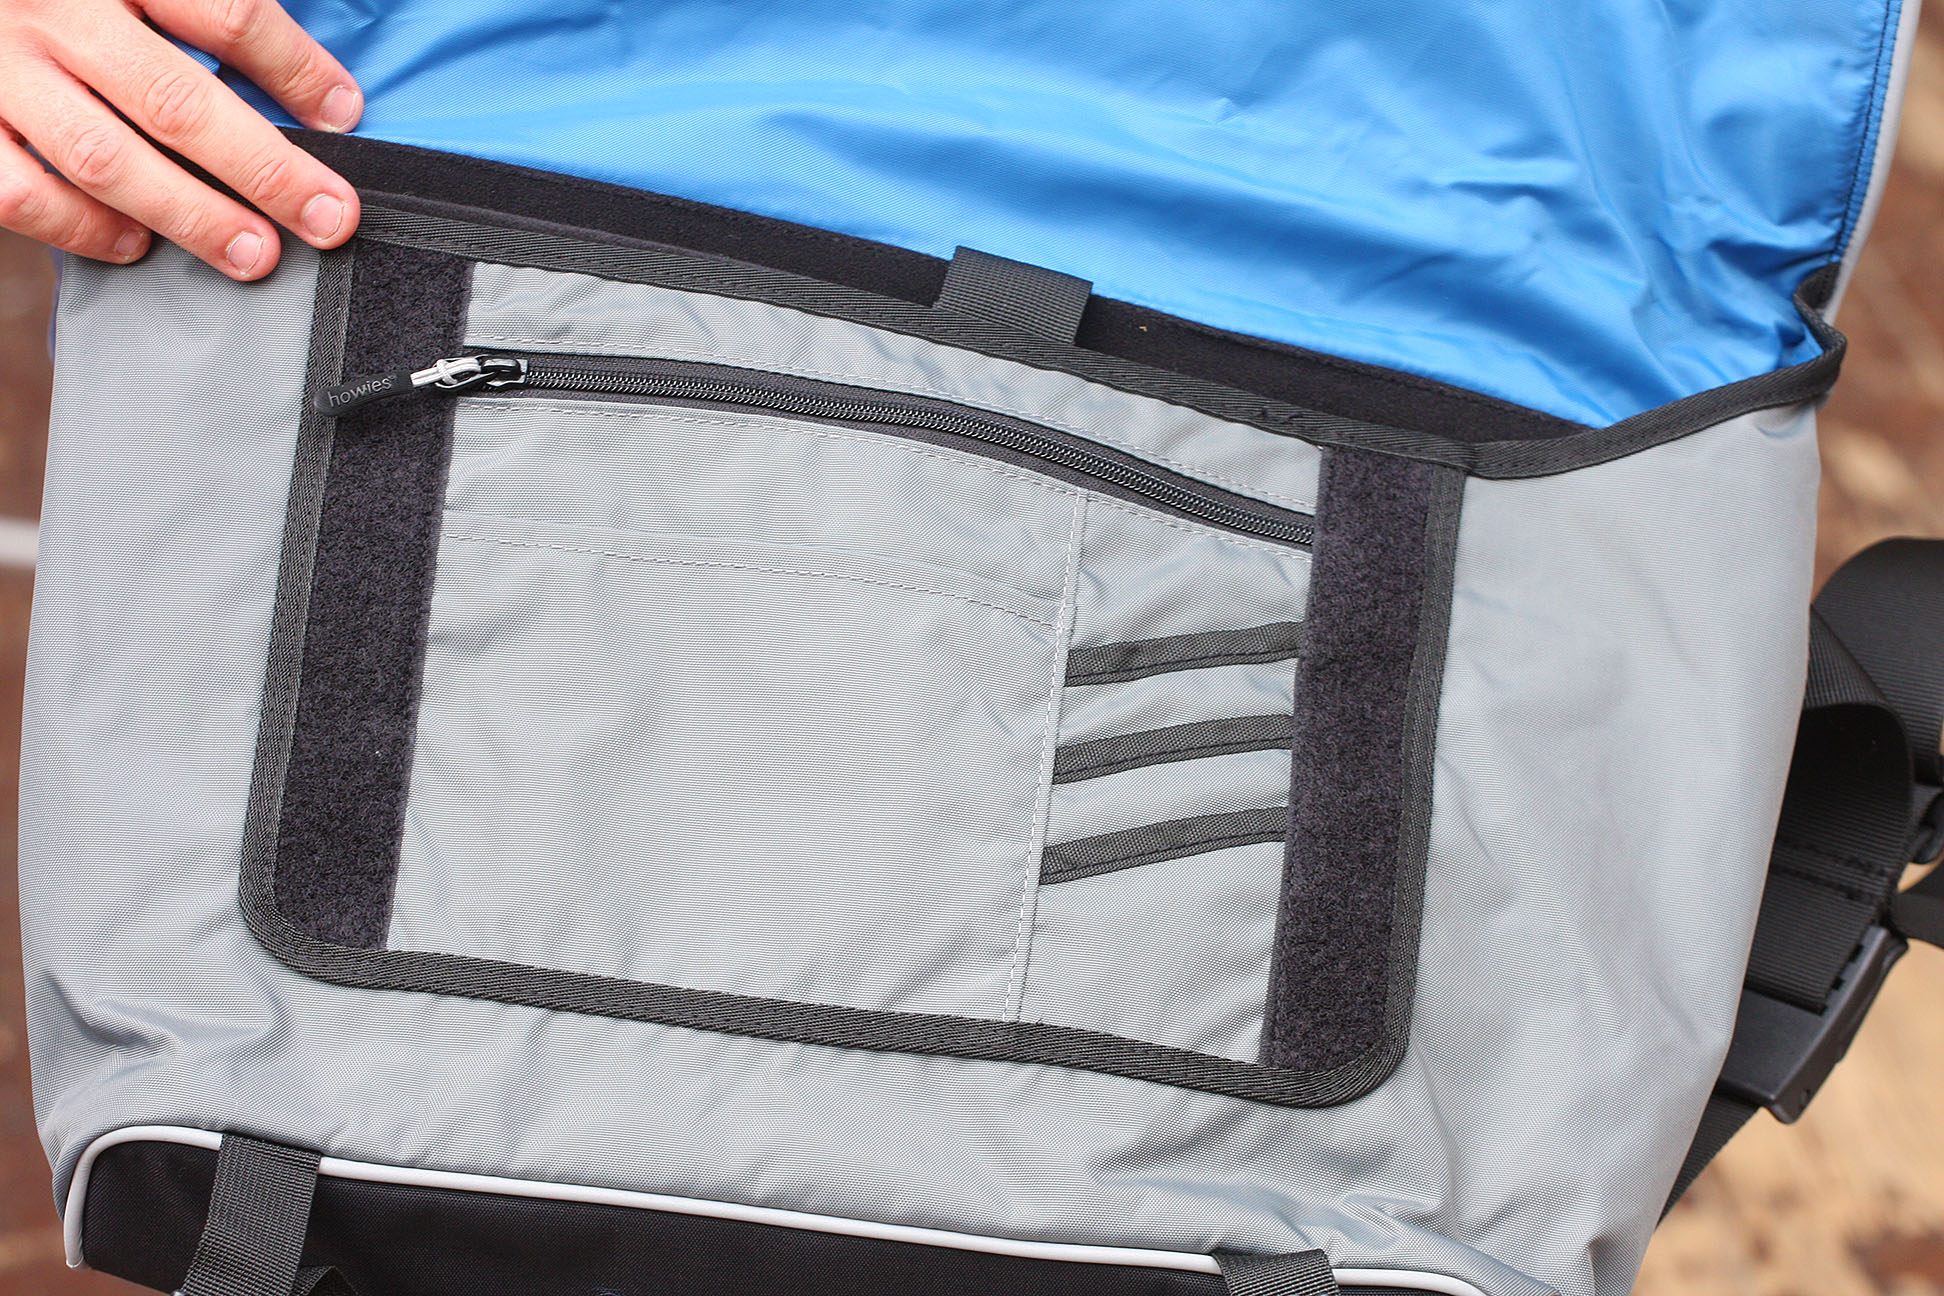 7 Howies Marloes Messenger Bag 4500 Comfy Stable And Practical The 6 In 1 Secret Pouch Organiser Bgo 15